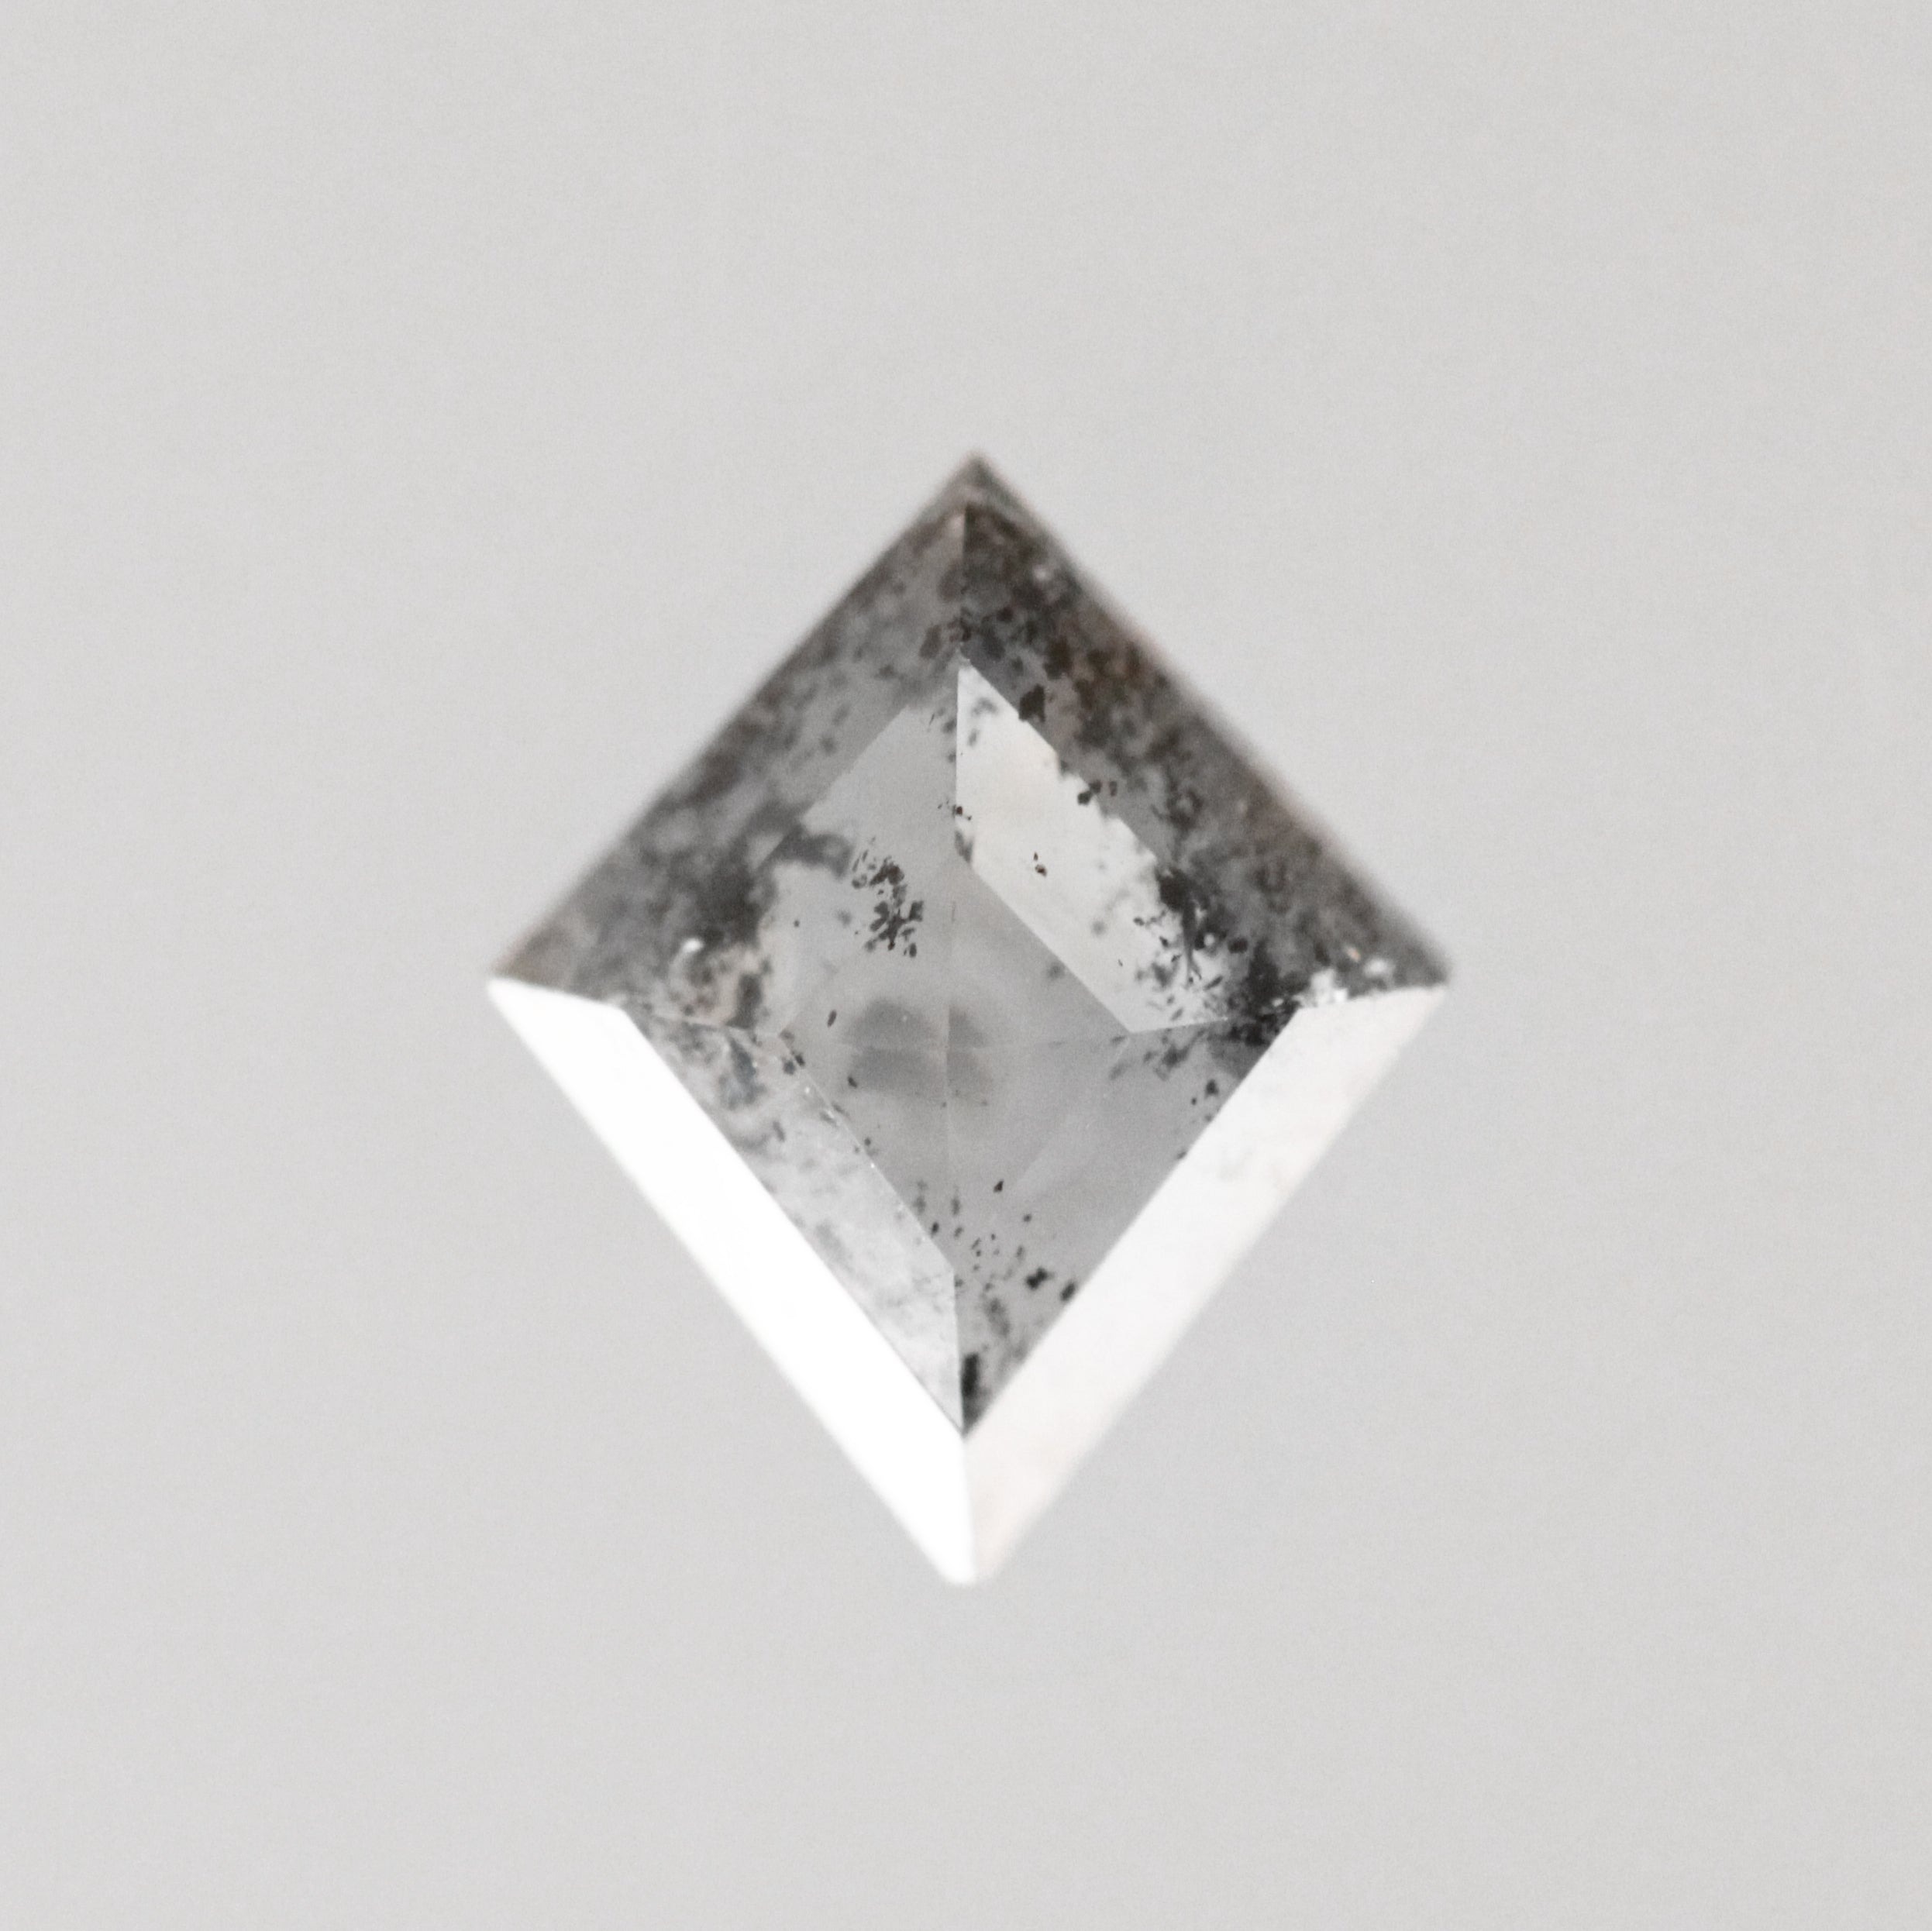 1.08 Carat Kite Celestial Diamond - Inventory Code KRSG108 - Celestial Diamonds ® by Midwinter Co.